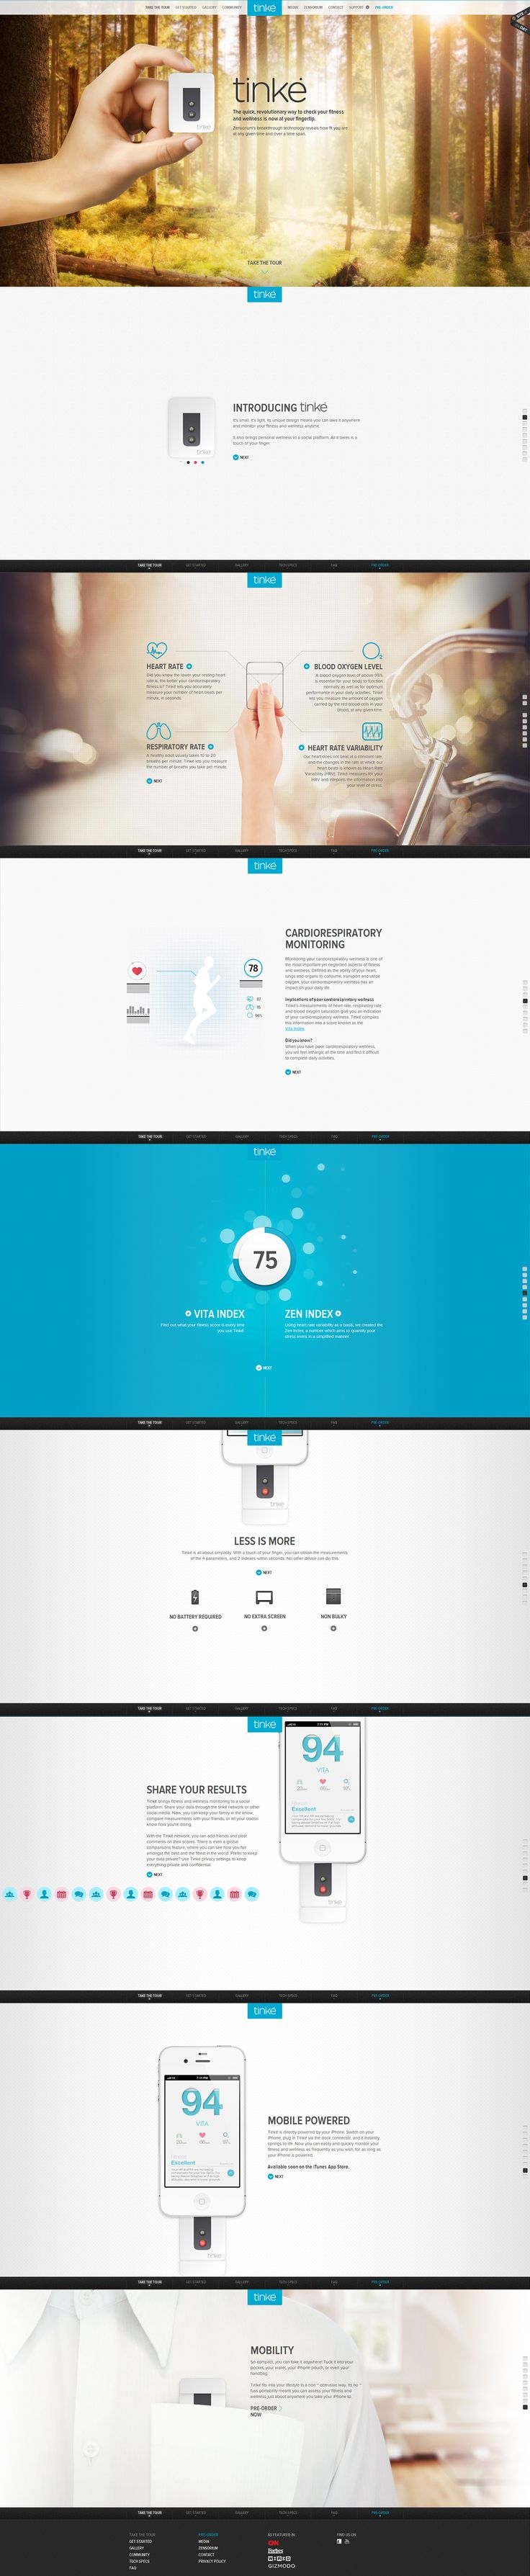 #webdesign #product #onepage #Interaction #UI